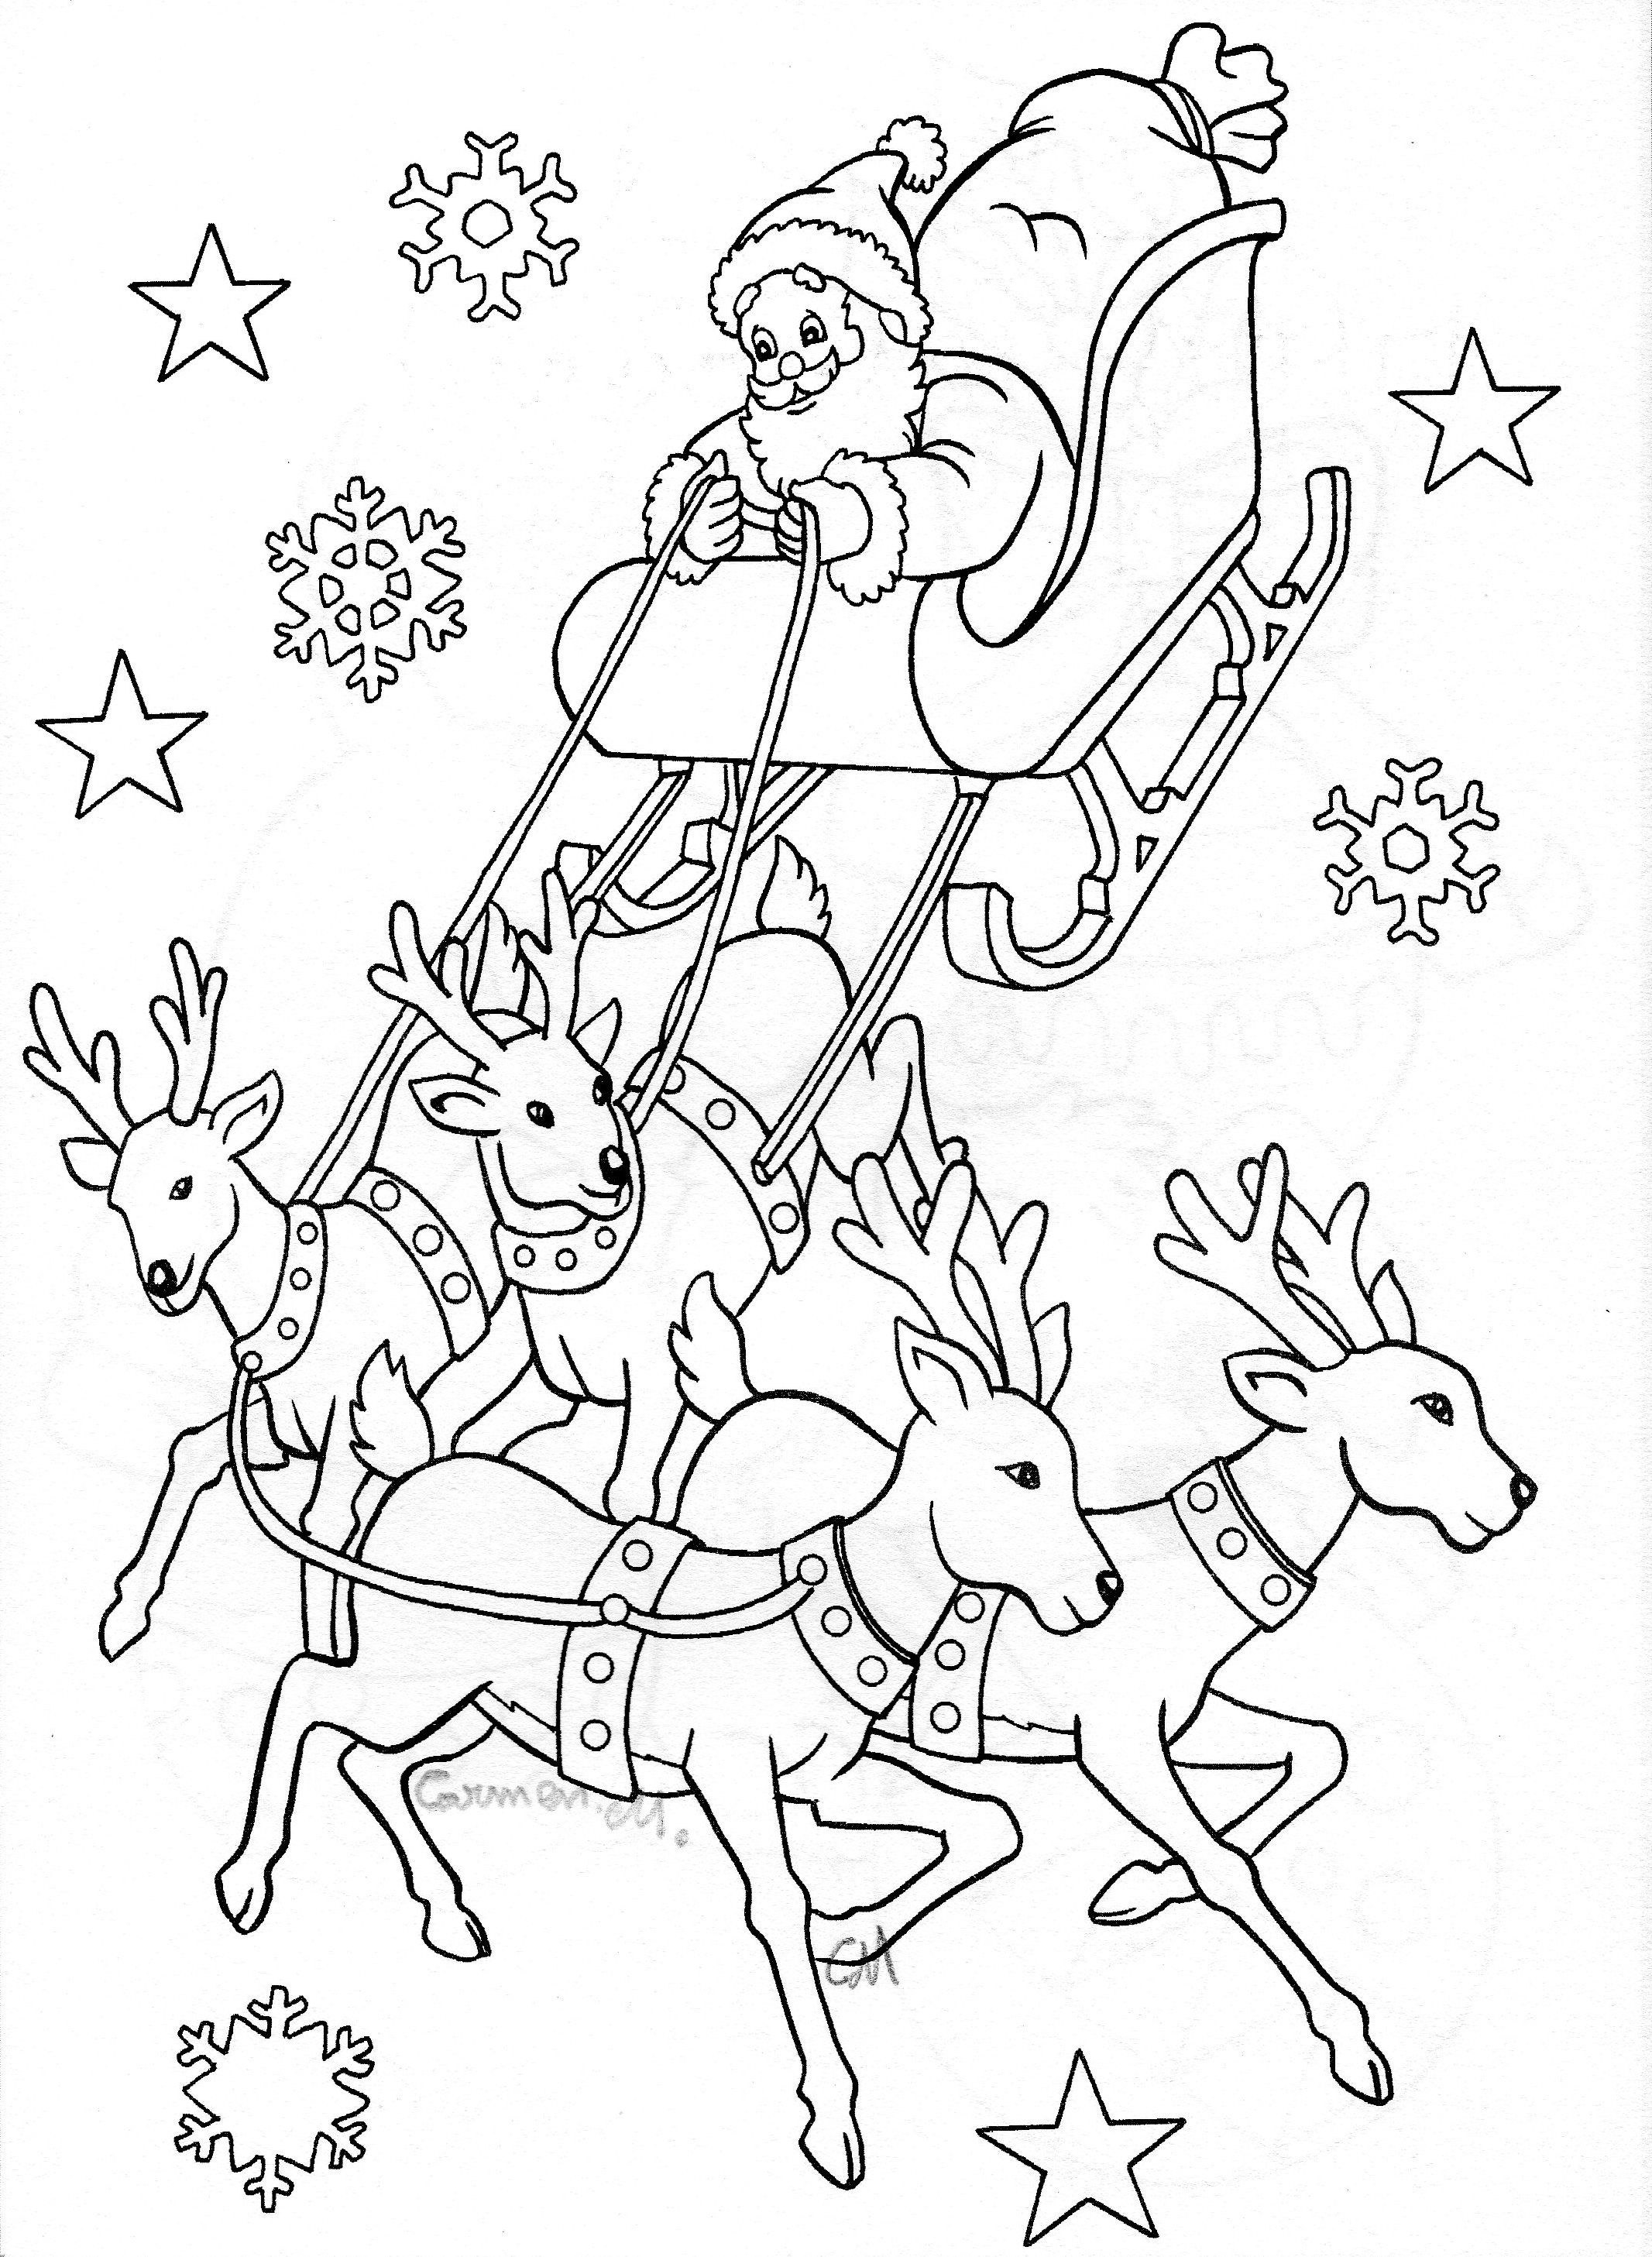 Pin By Pat Rusch On Disegni Natale Christmas Coloring Books Christmas Coloring Sheets Christmas Coloring Pages